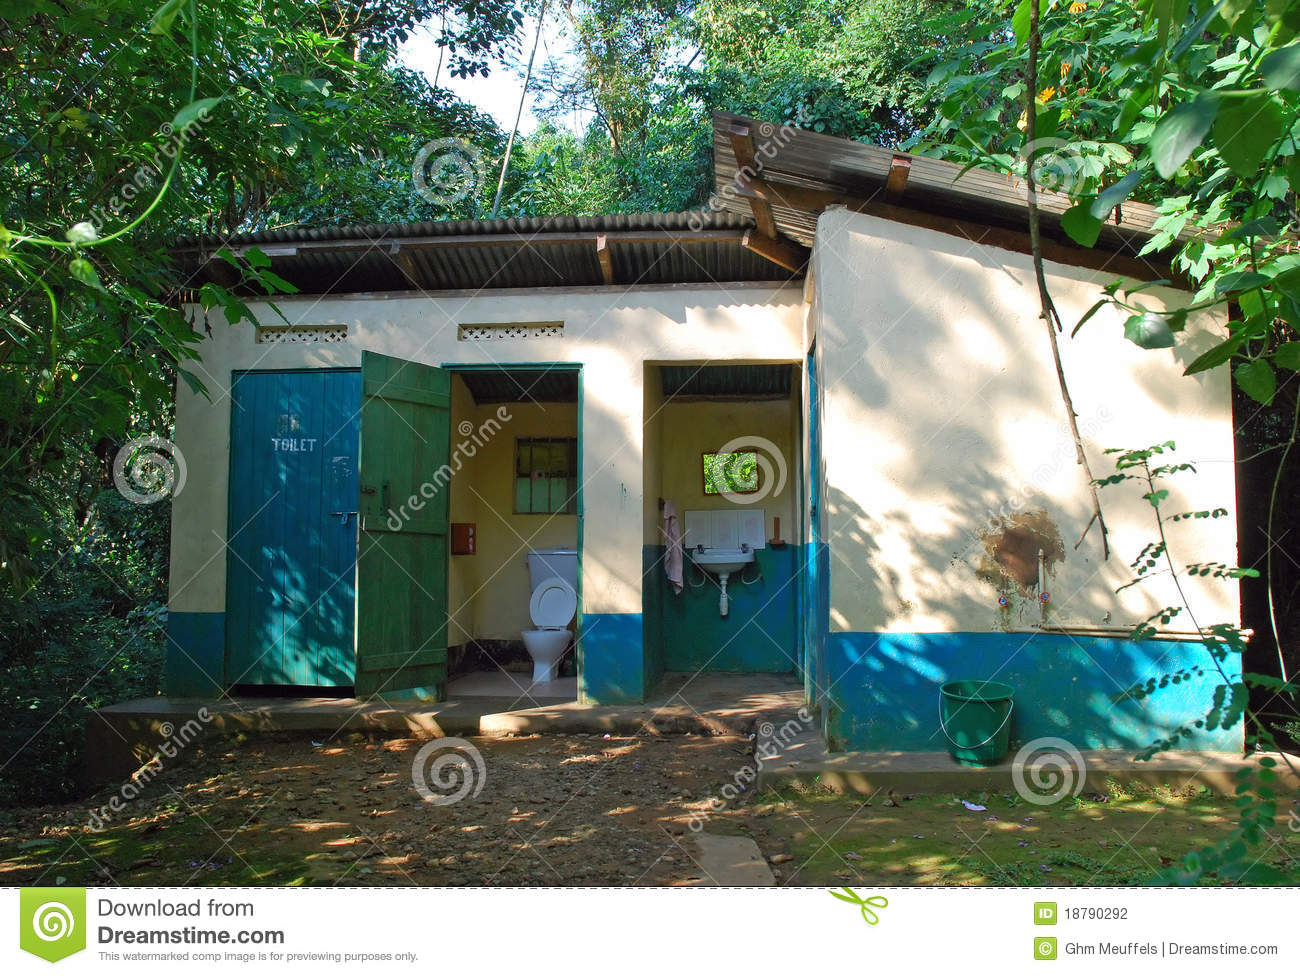 Toilet and shower building at an African site